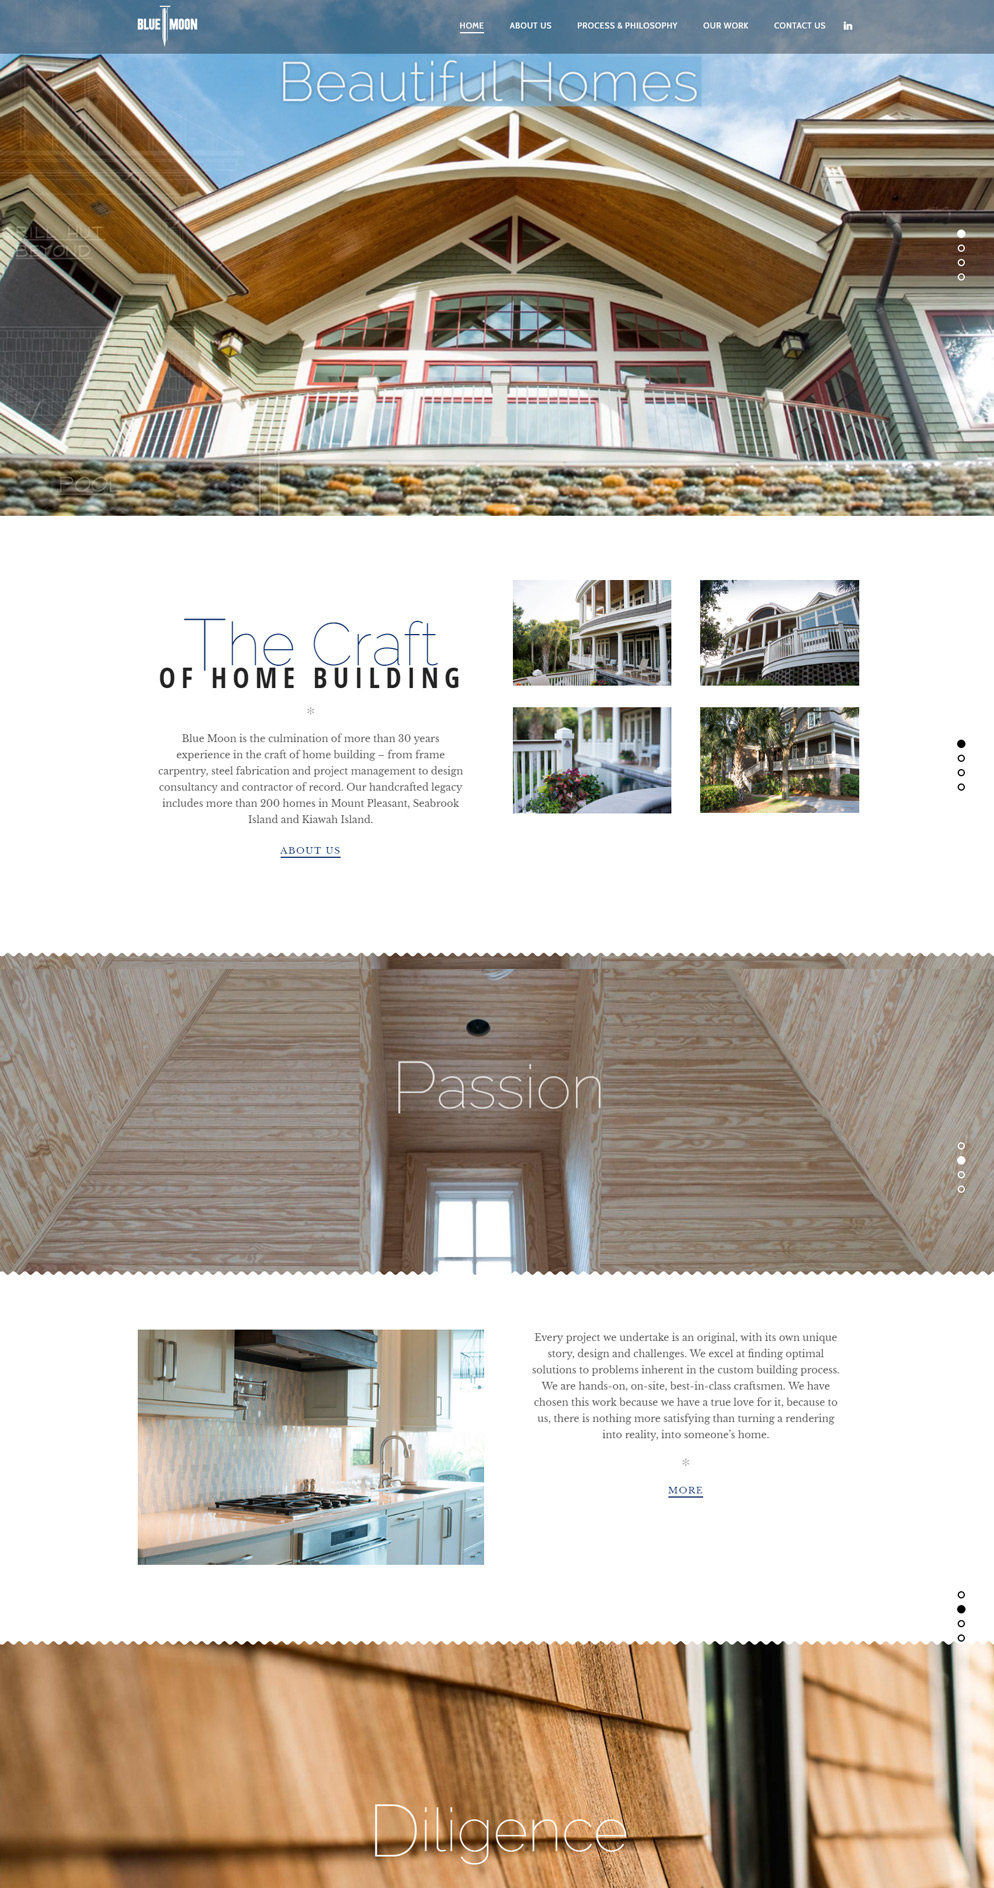 Fully responsive WordPress website for luxury artisans Blue Moon Home Builders